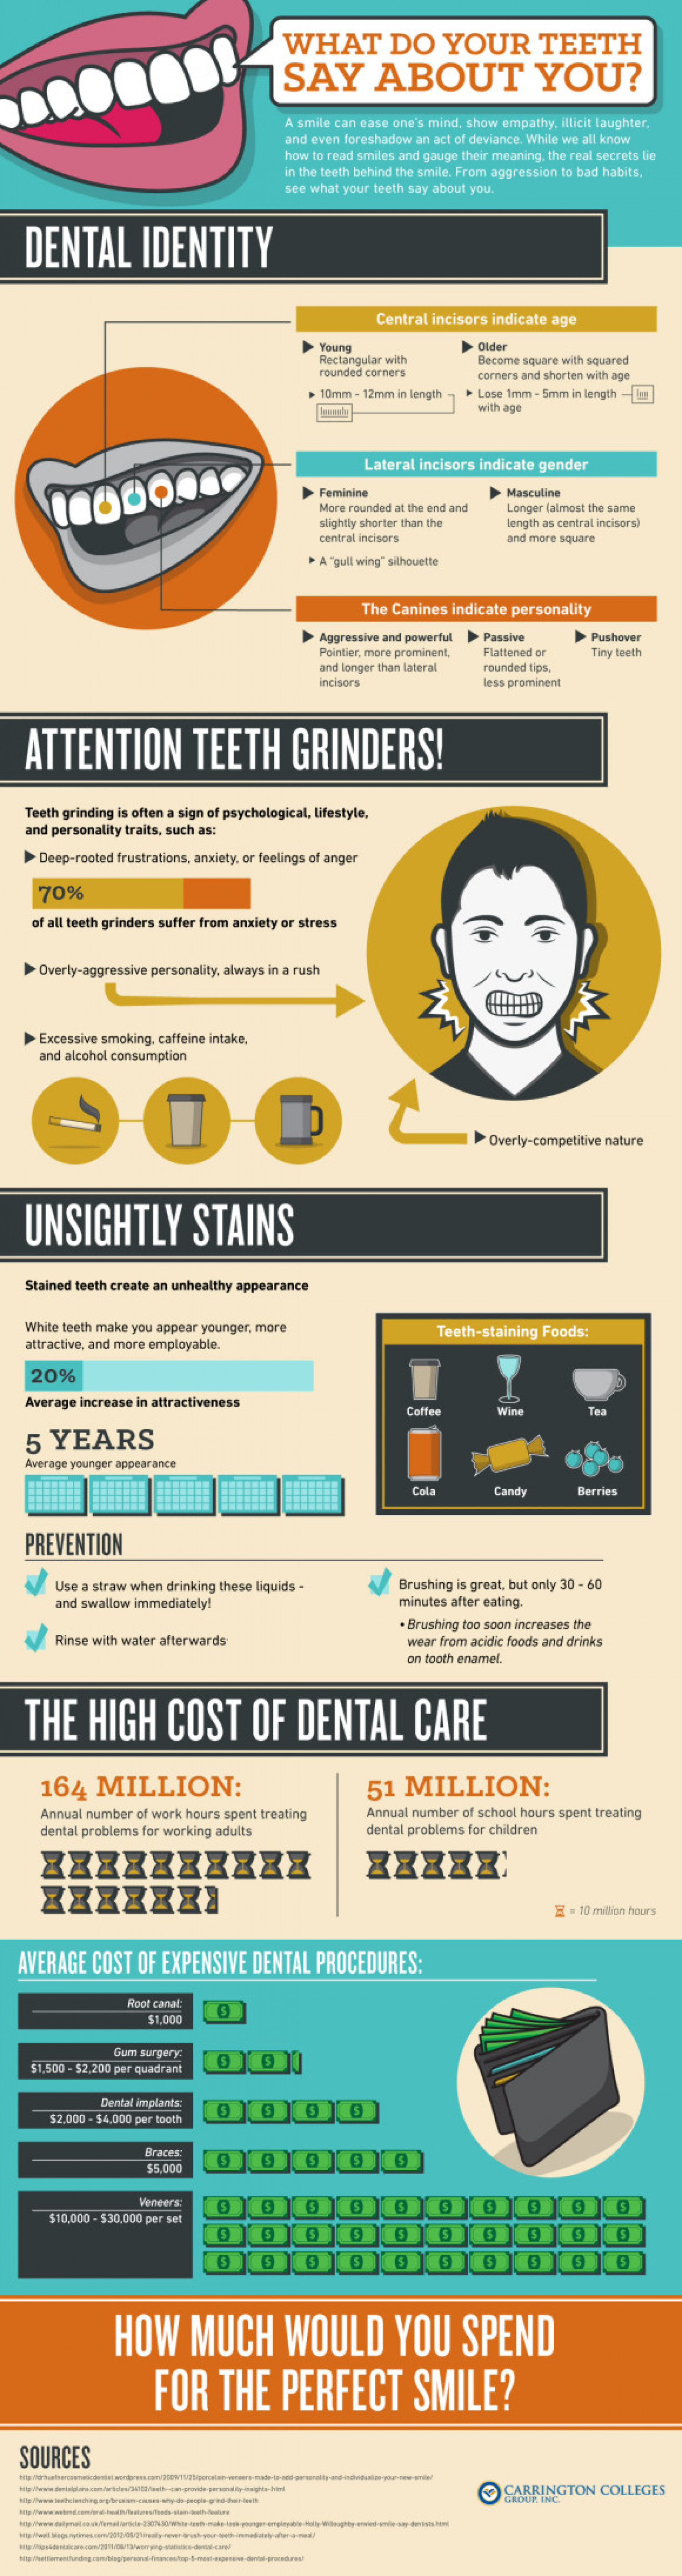 The Surprising Things Your Teeth Reveal About You Infographic